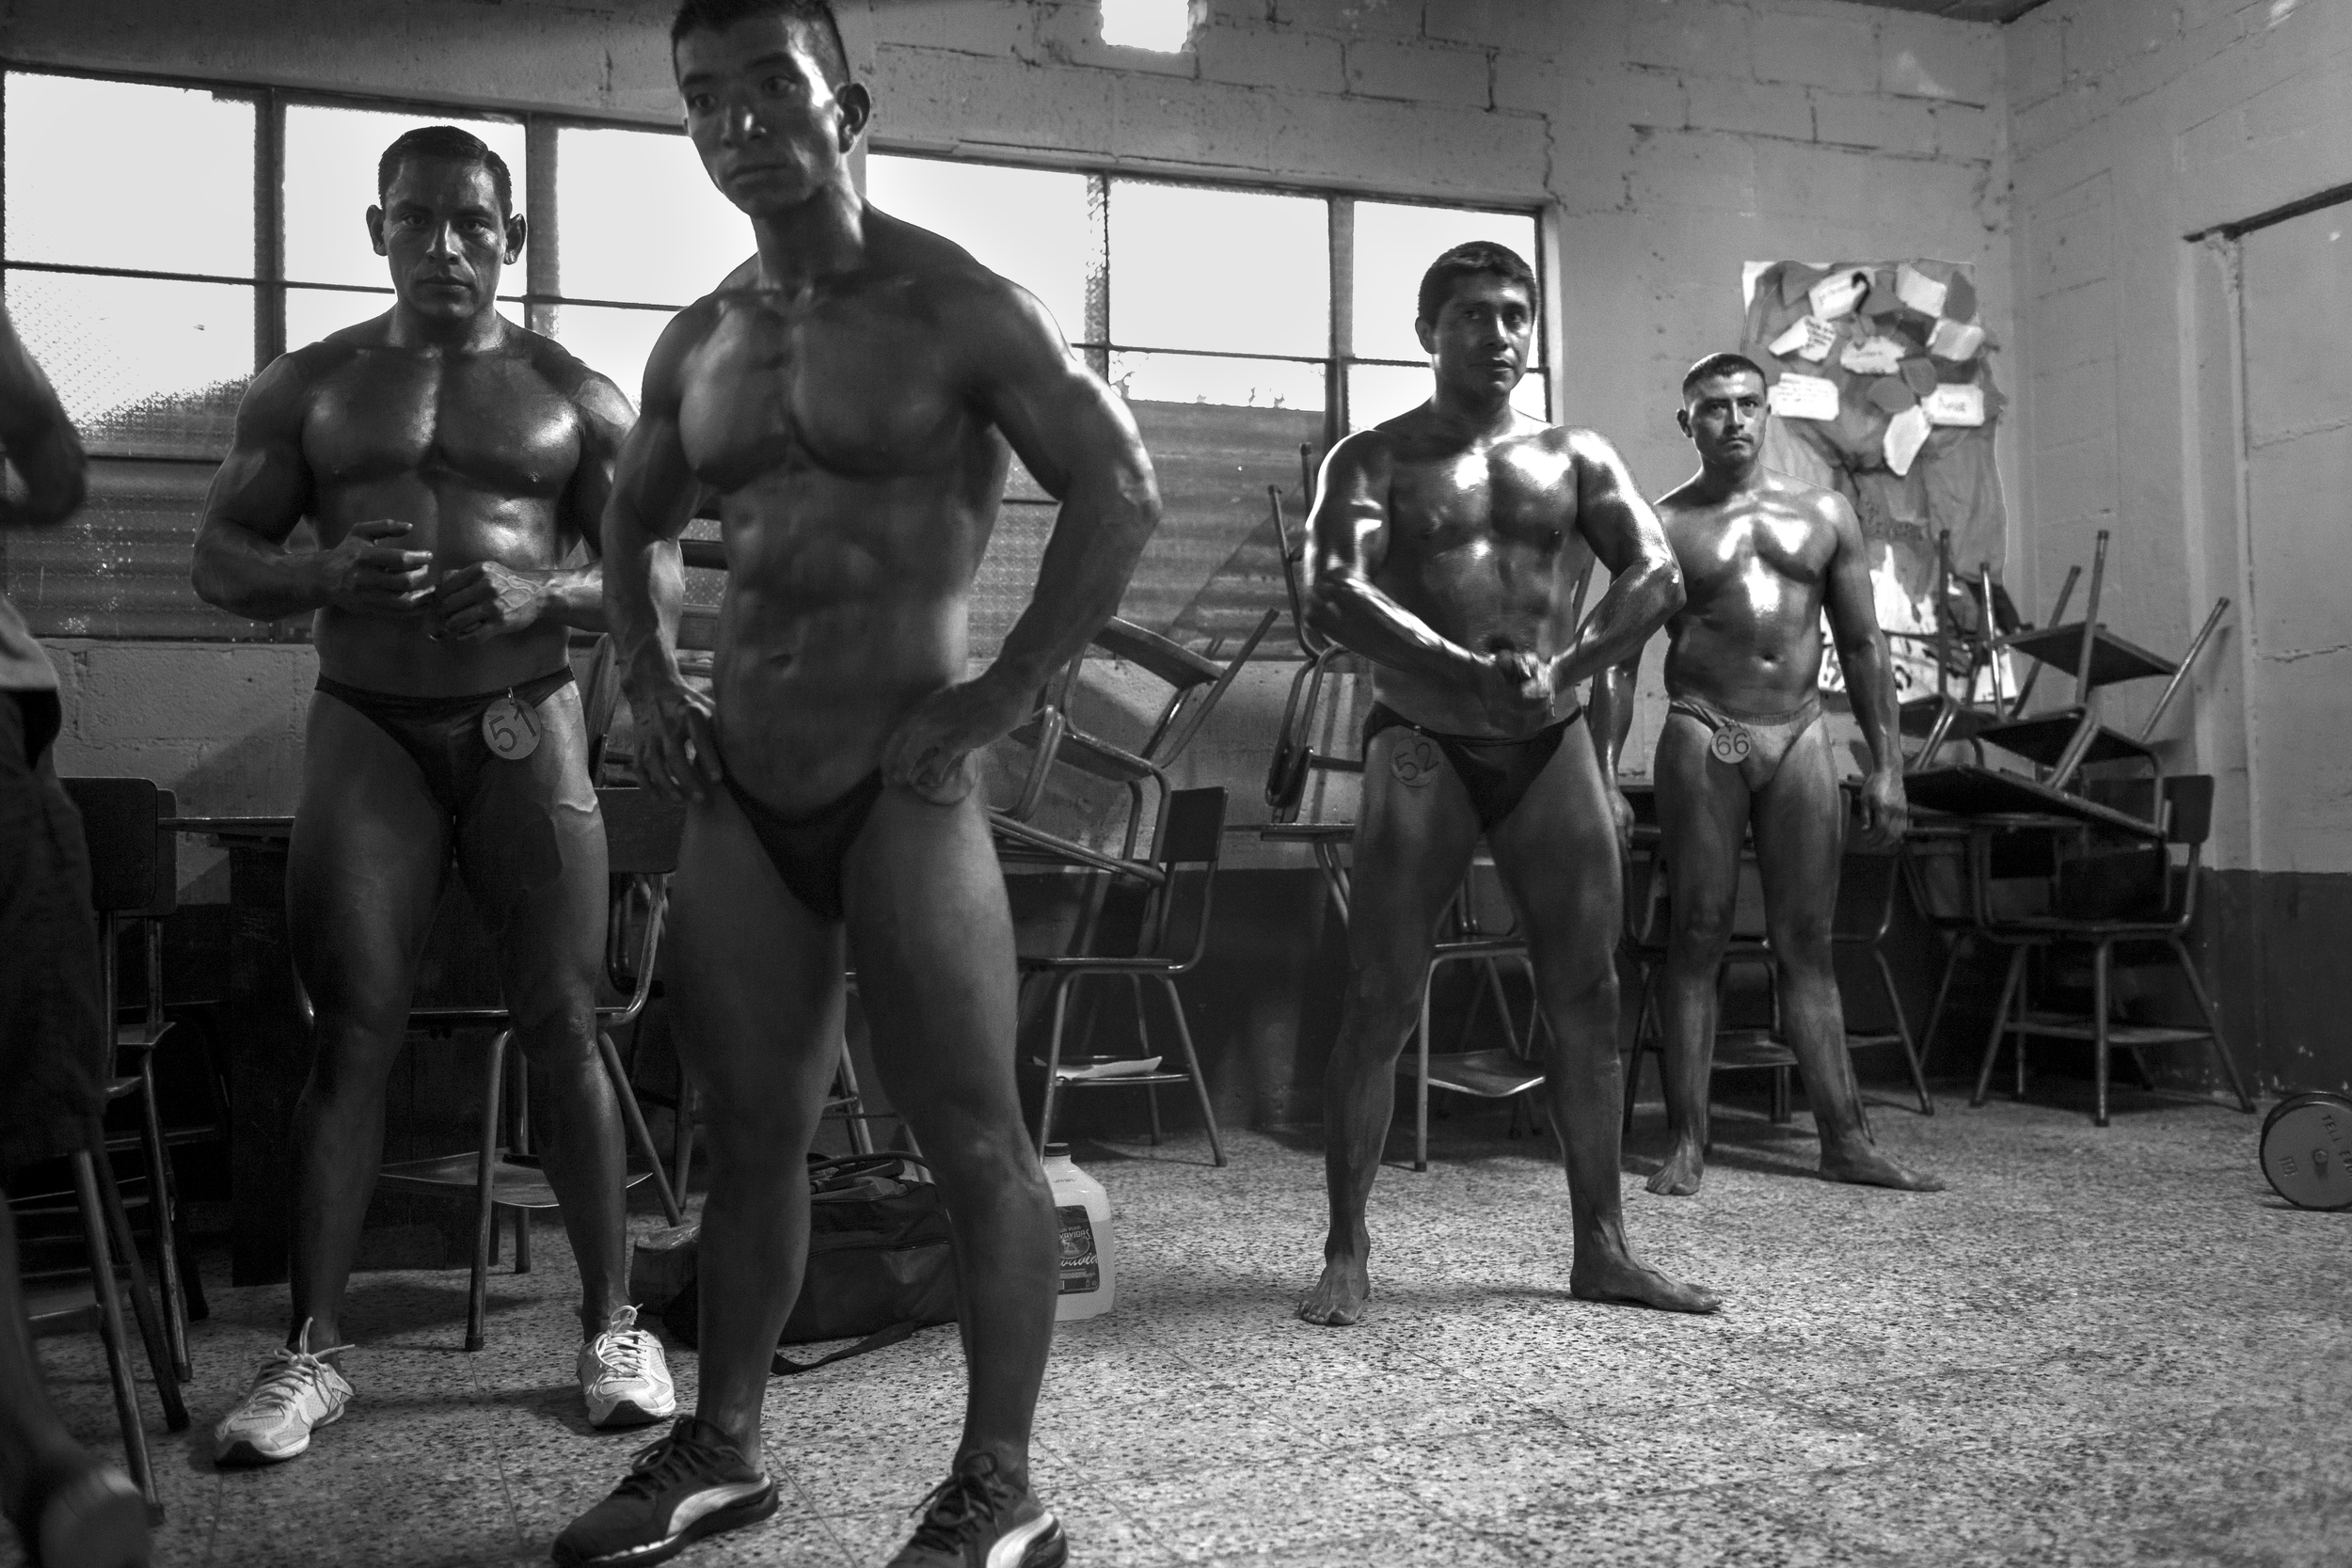 A classroom is converted into a prep room at the Gimnasio La Fábrica bodybuilding contest in Antigua, Guatemala.